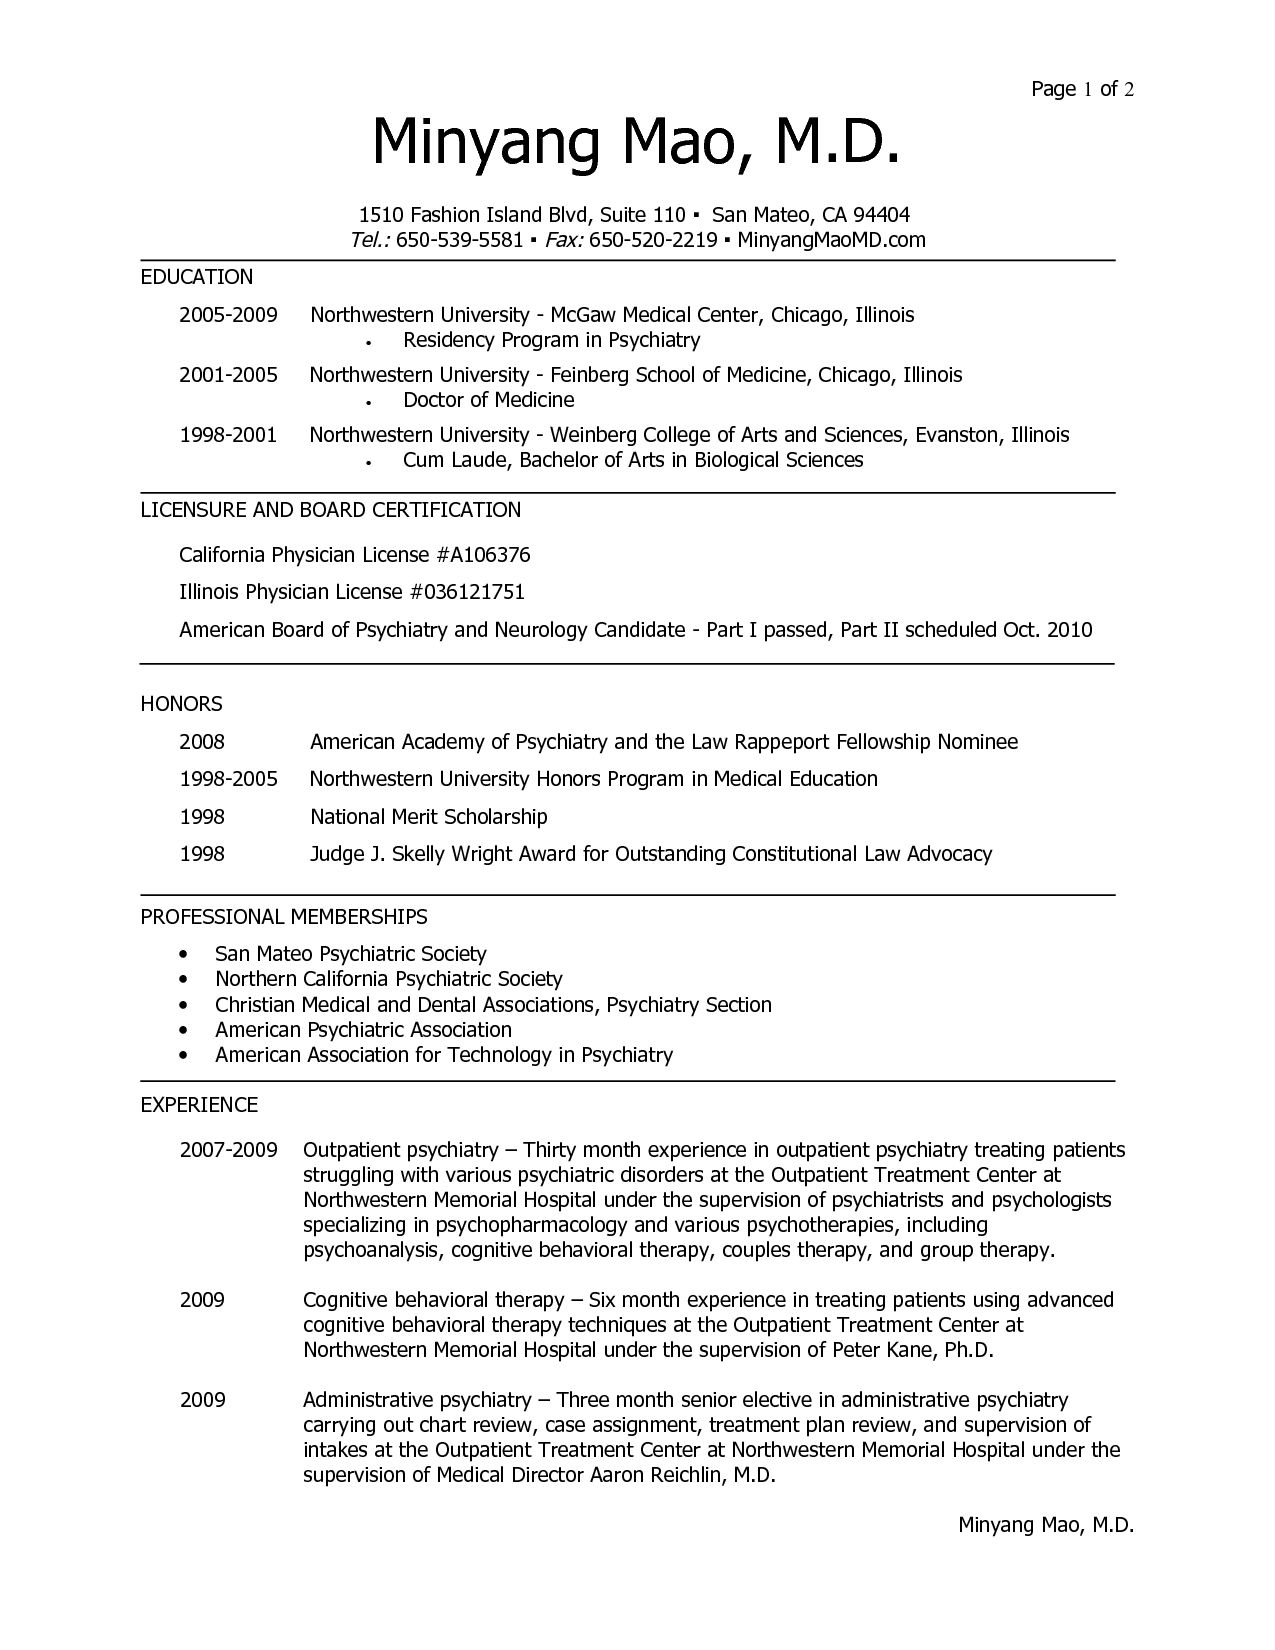 sample resume medical fellowship